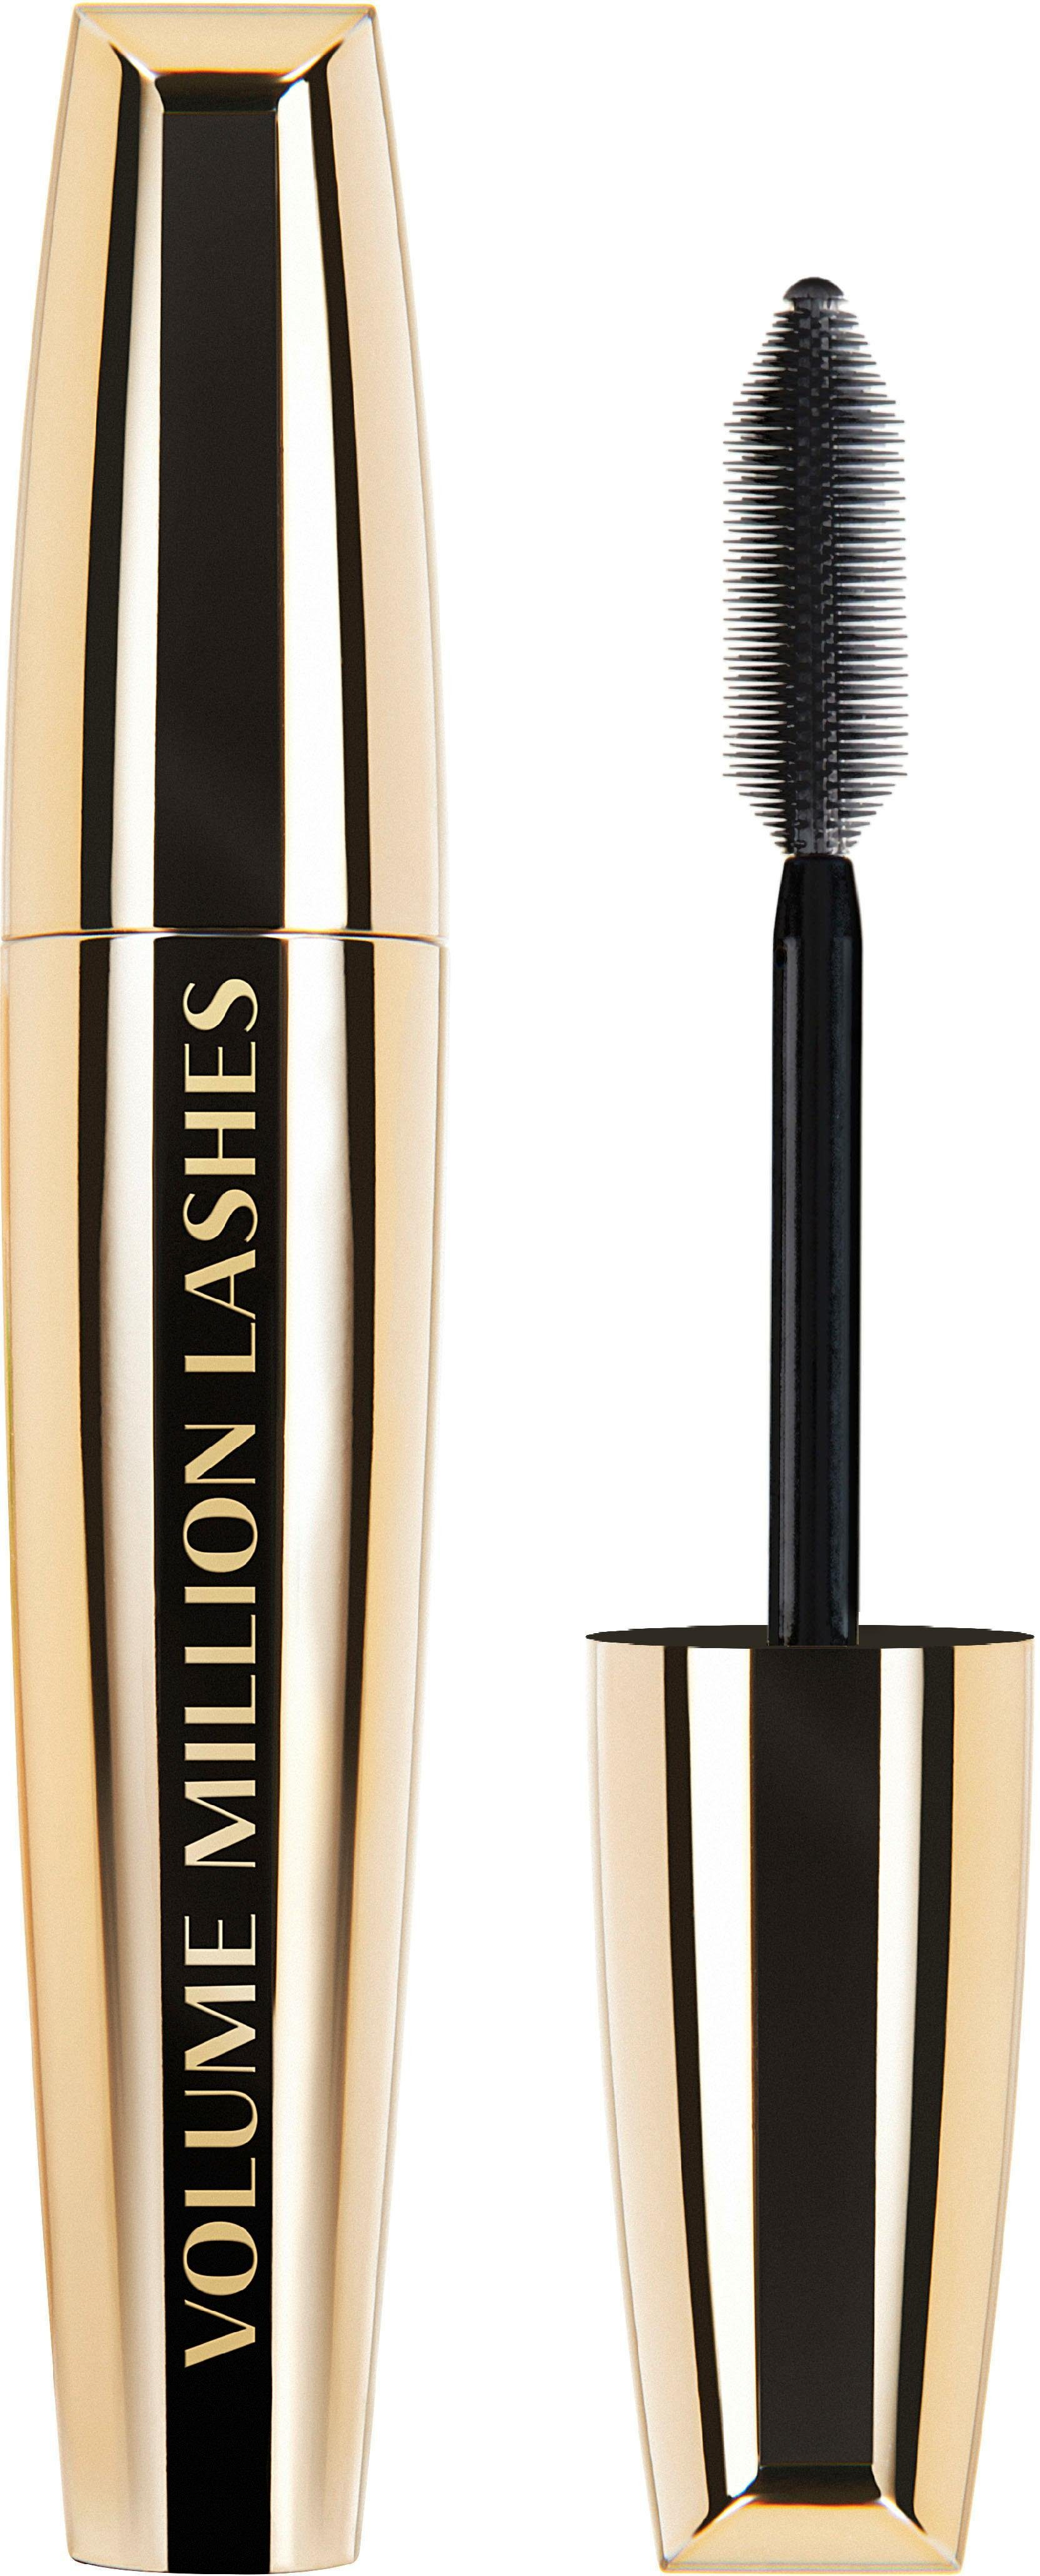 L'Oréal Paris, »Volume Million Lashes«, Mascara